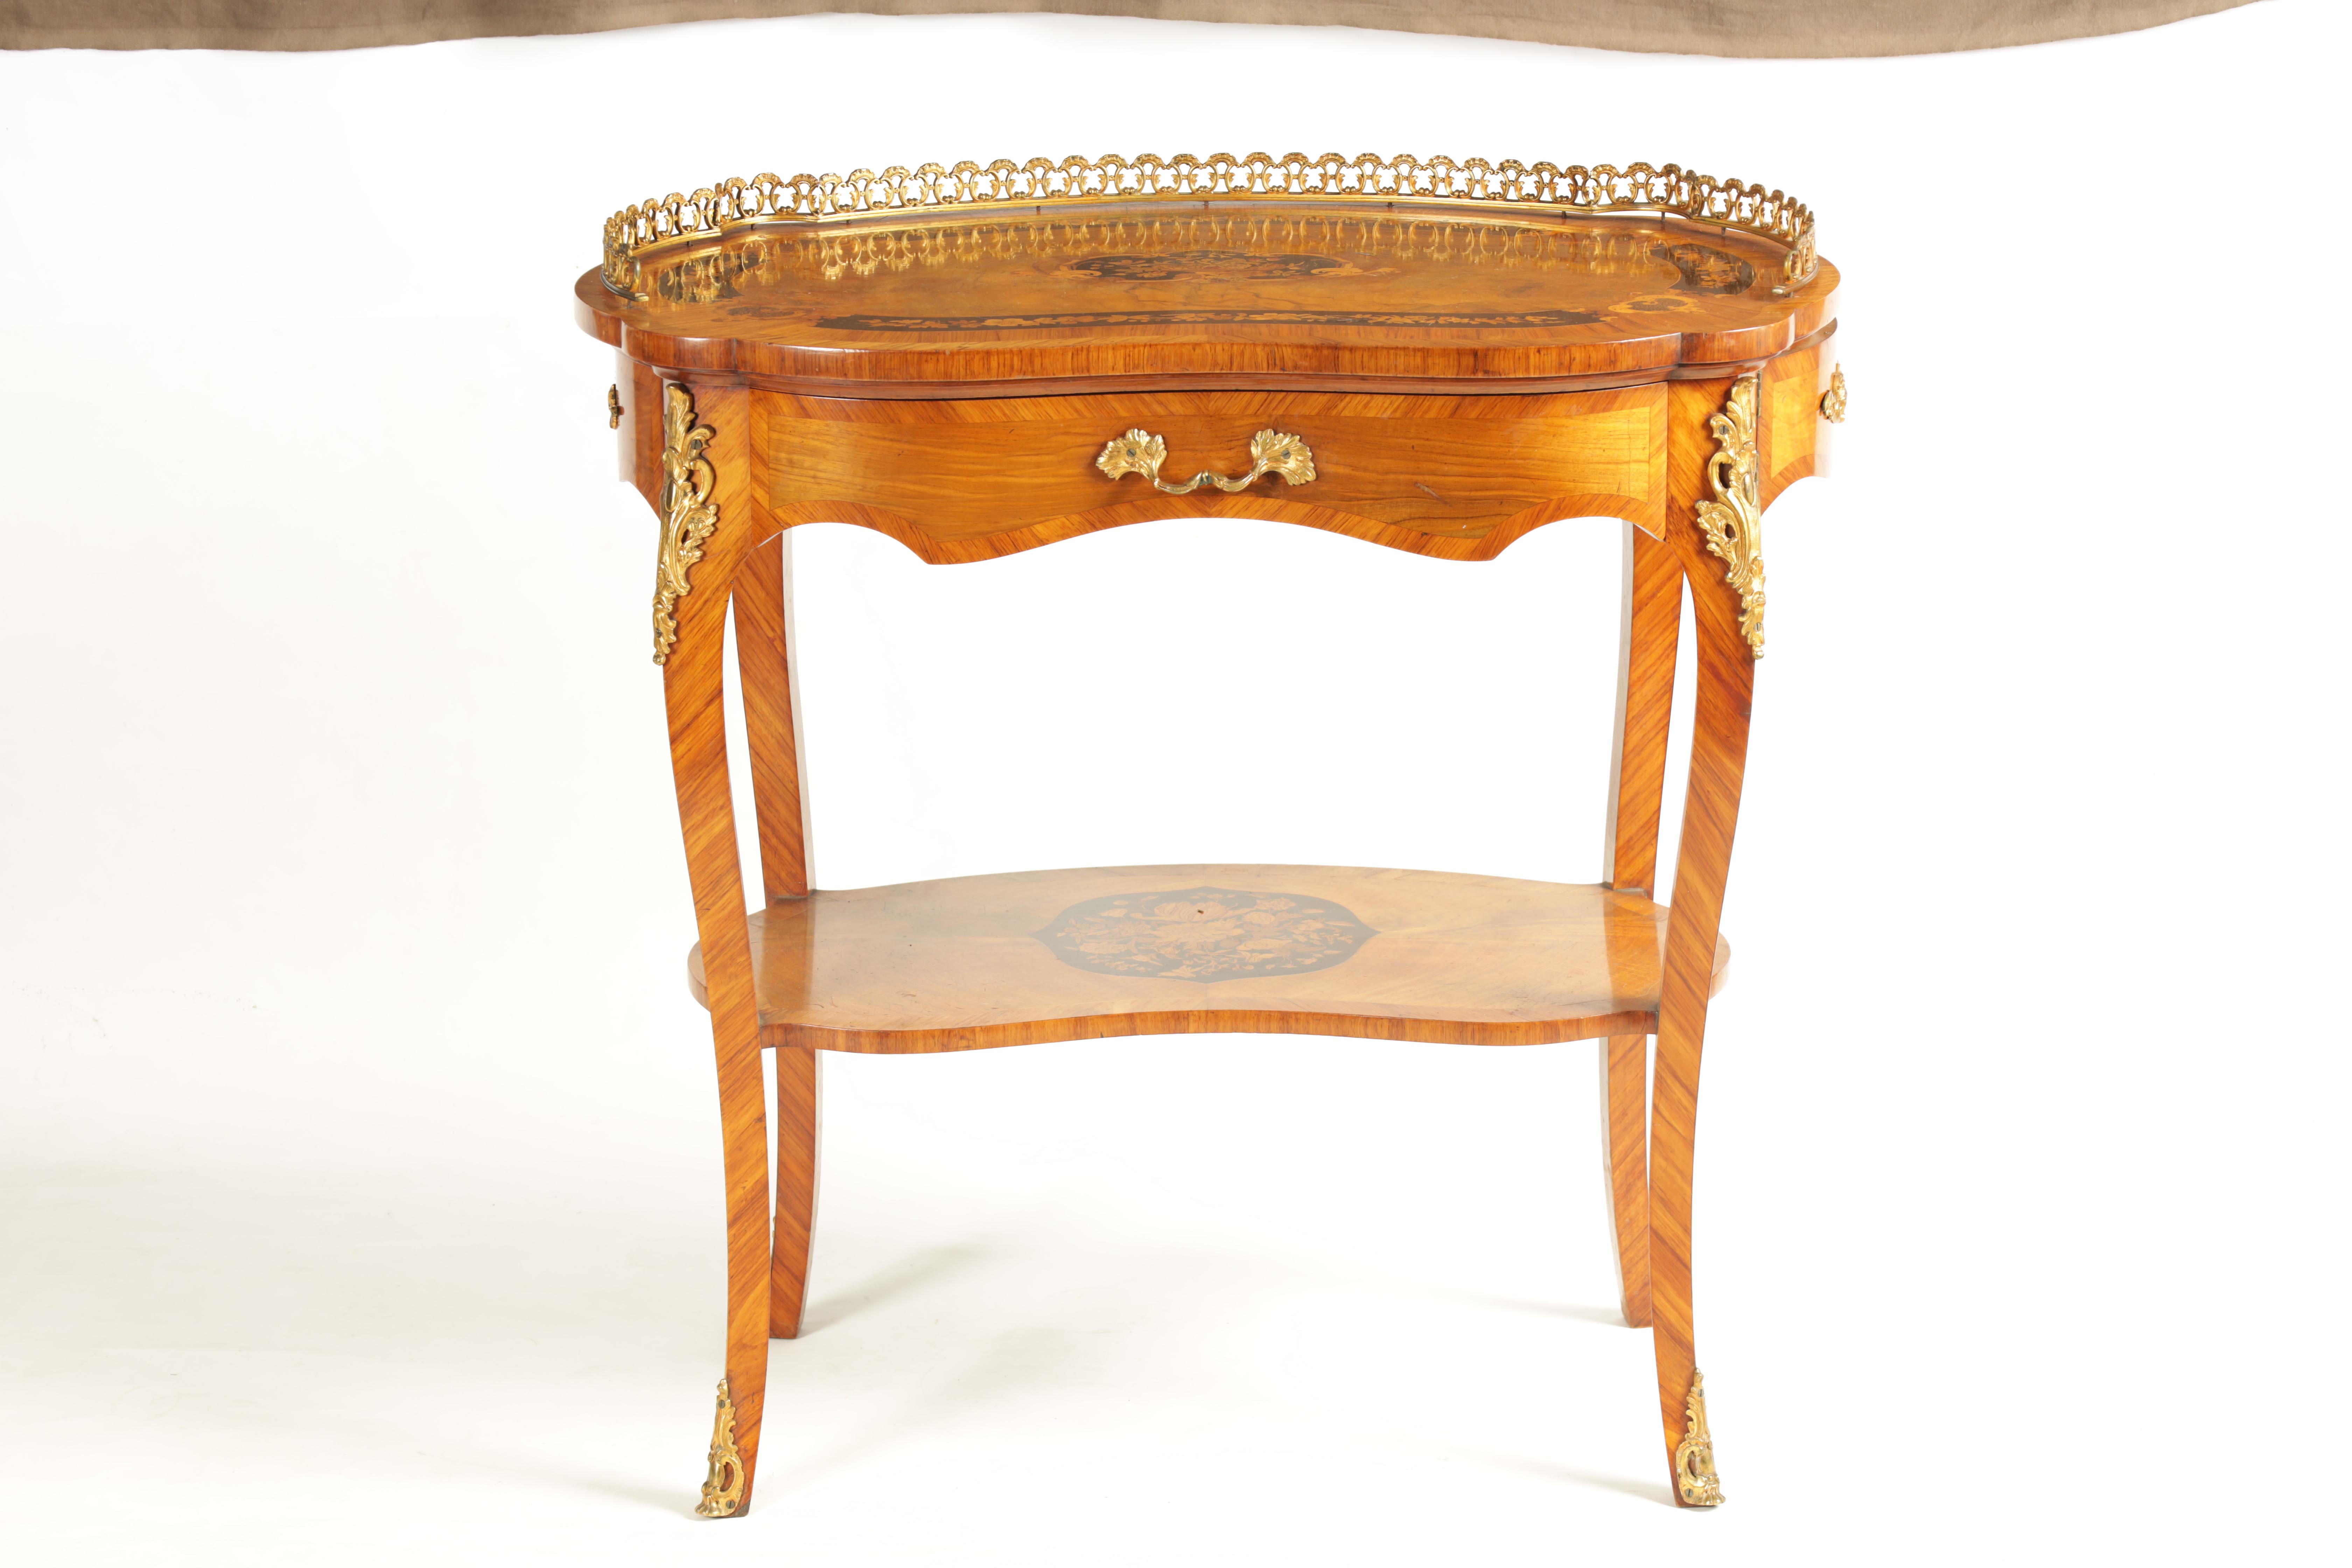 A FINE 19TH CENTURY MARQUETRY INLAID WALNUT KIDNEY SHAPED WRITING TABLE with raised brass - Image 7 of 10